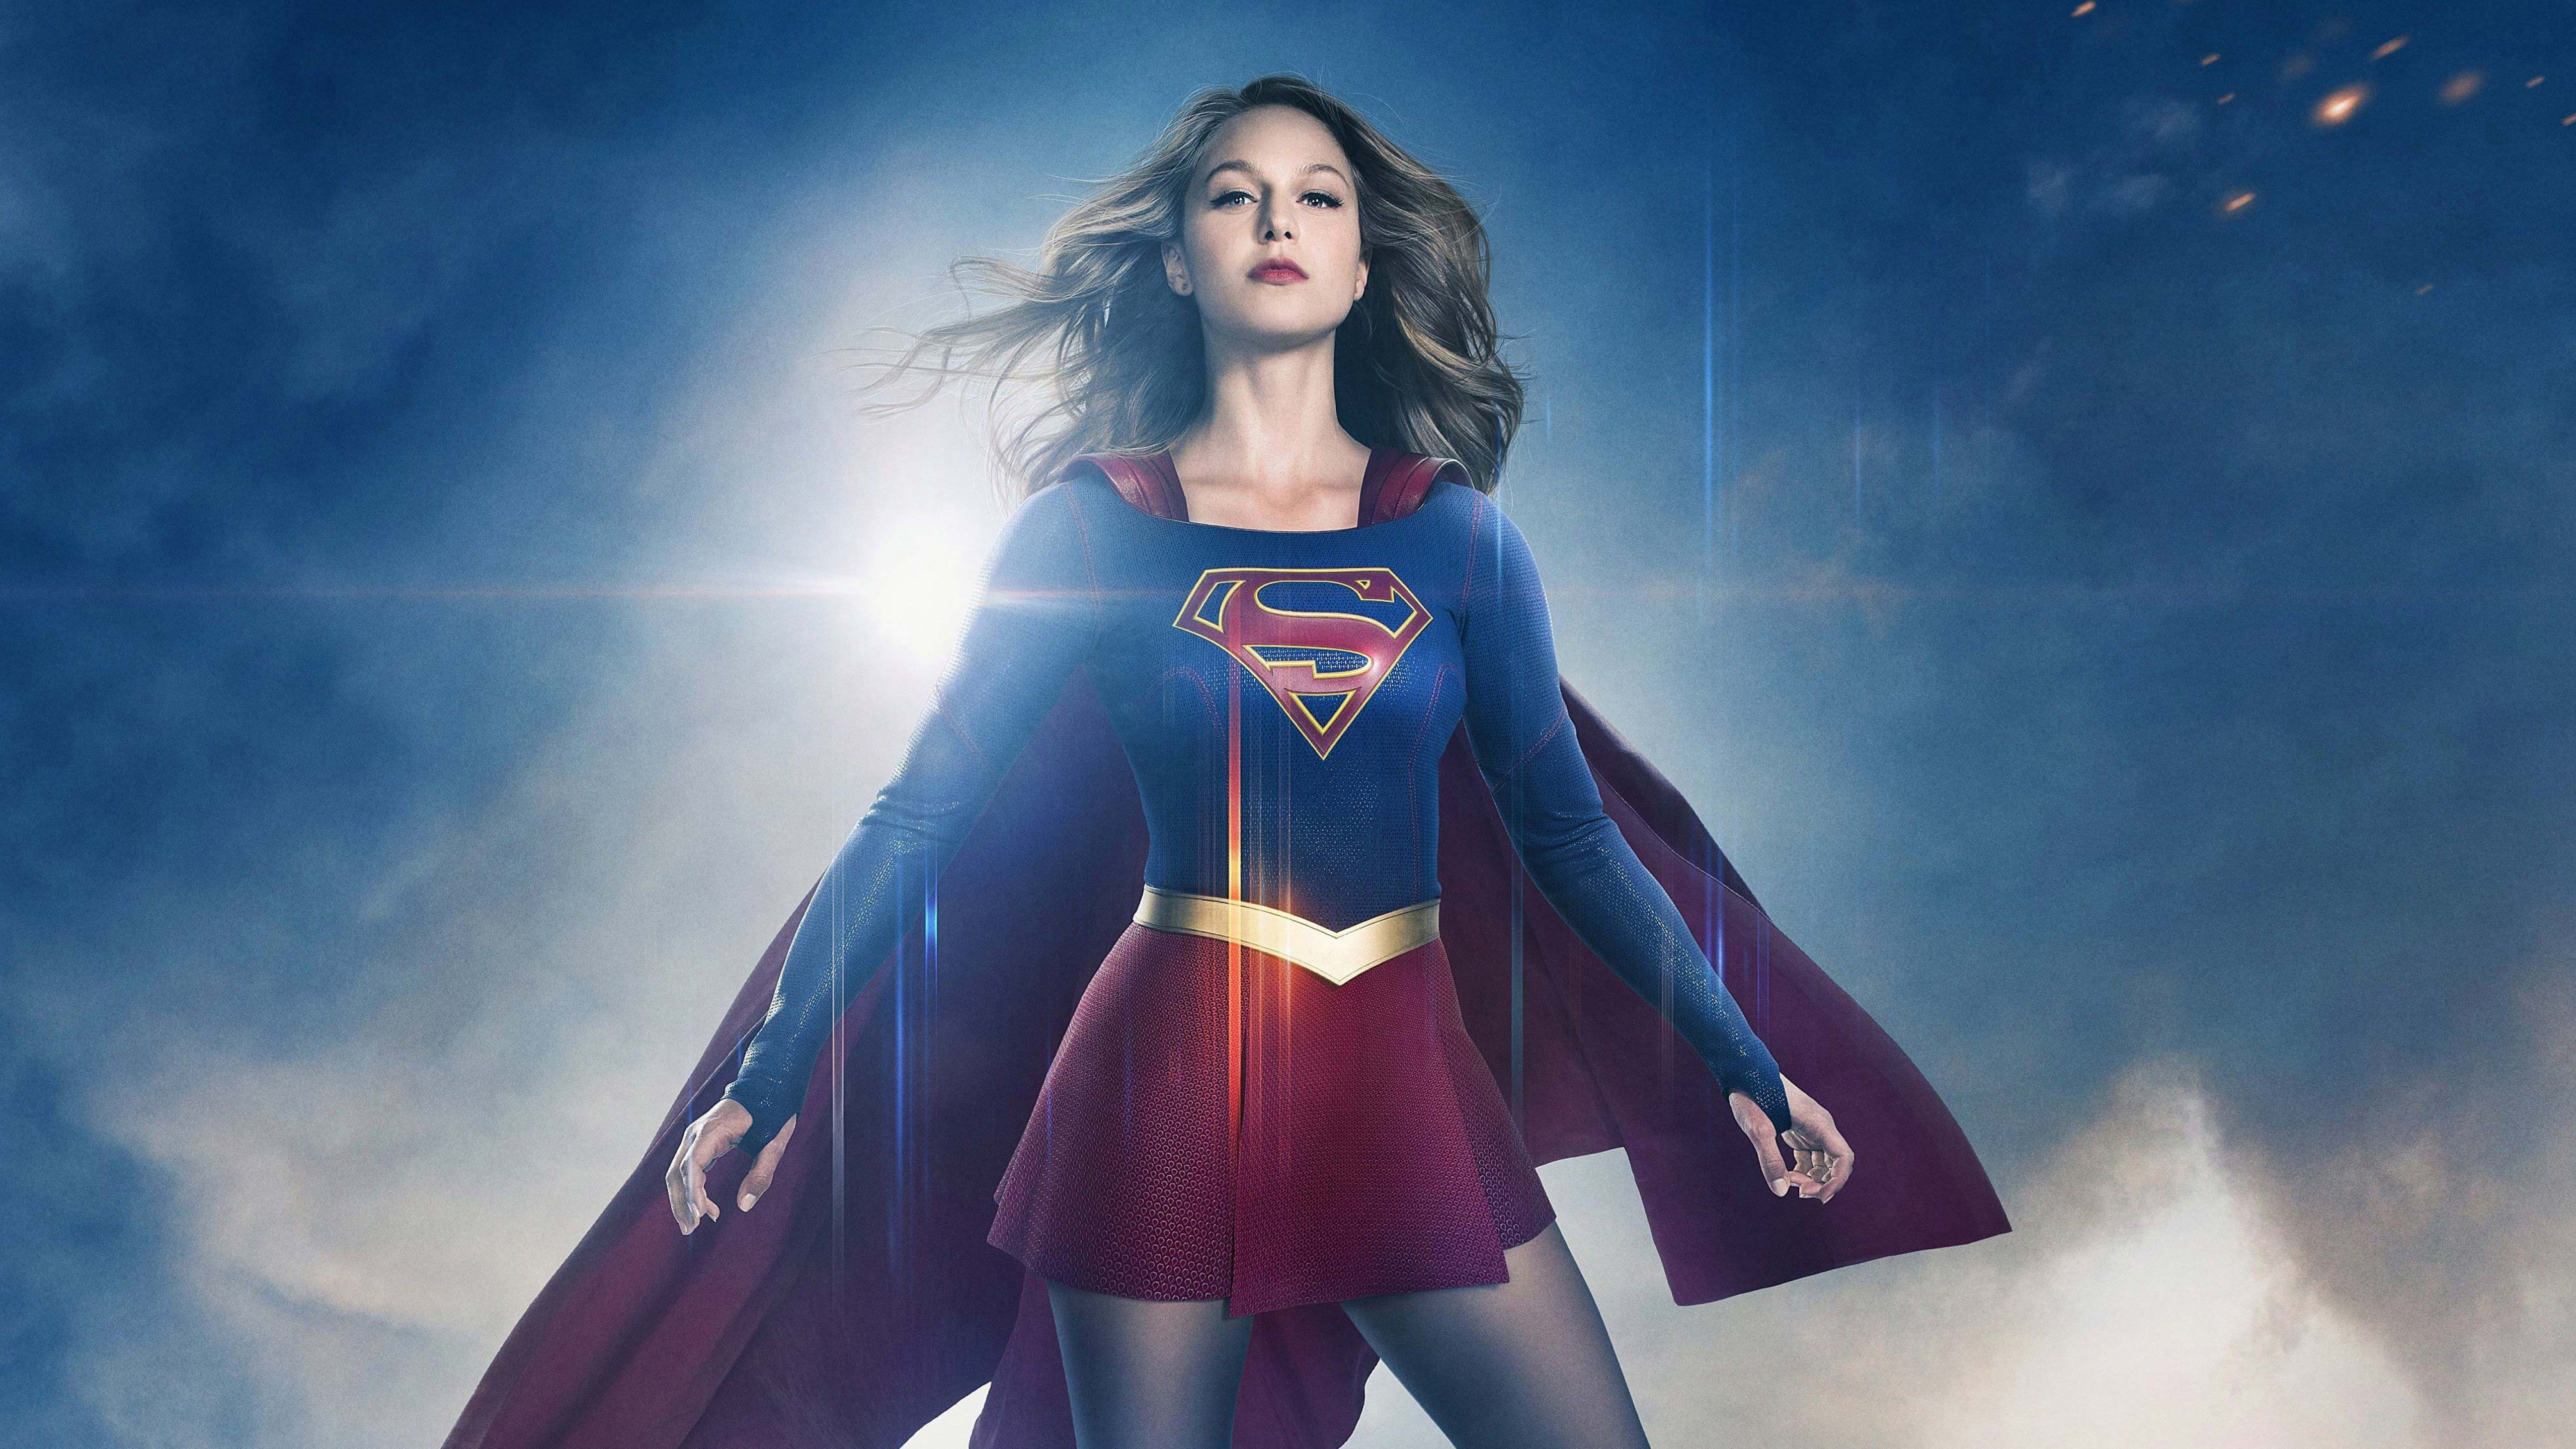 Desktop wallpaper style photo of Supergirl, played by Melissa Benoist, posed powerfully